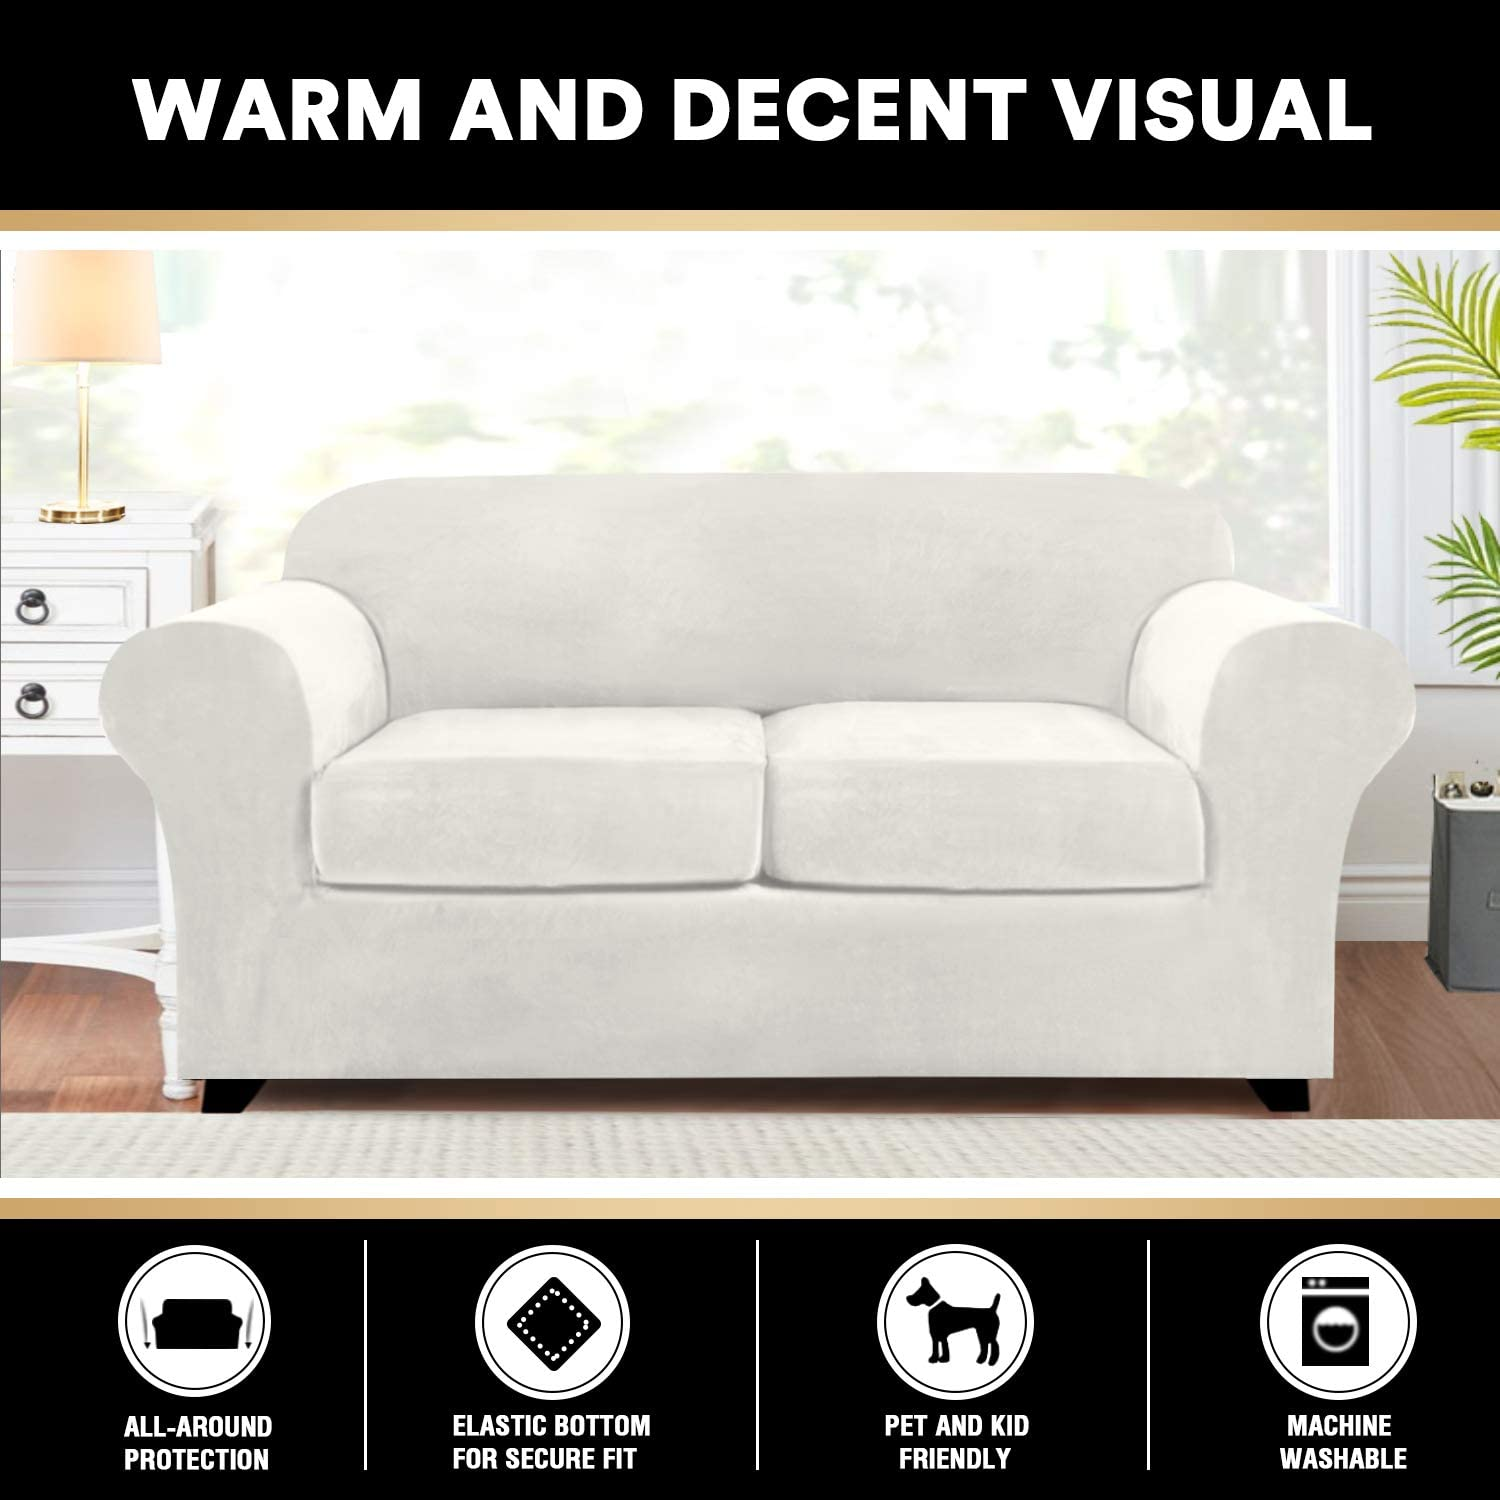 3 Pieces Sofa Covers Stretch Velvet Couch Covers for 2 Cushion Sofa Slipcovers Soft Sofa Slip Covers with 2 Non Slip Straps Furniture Covers with 2 Individual Seat Cushion Covers (Loveseat, Off White): Home & Kitchen